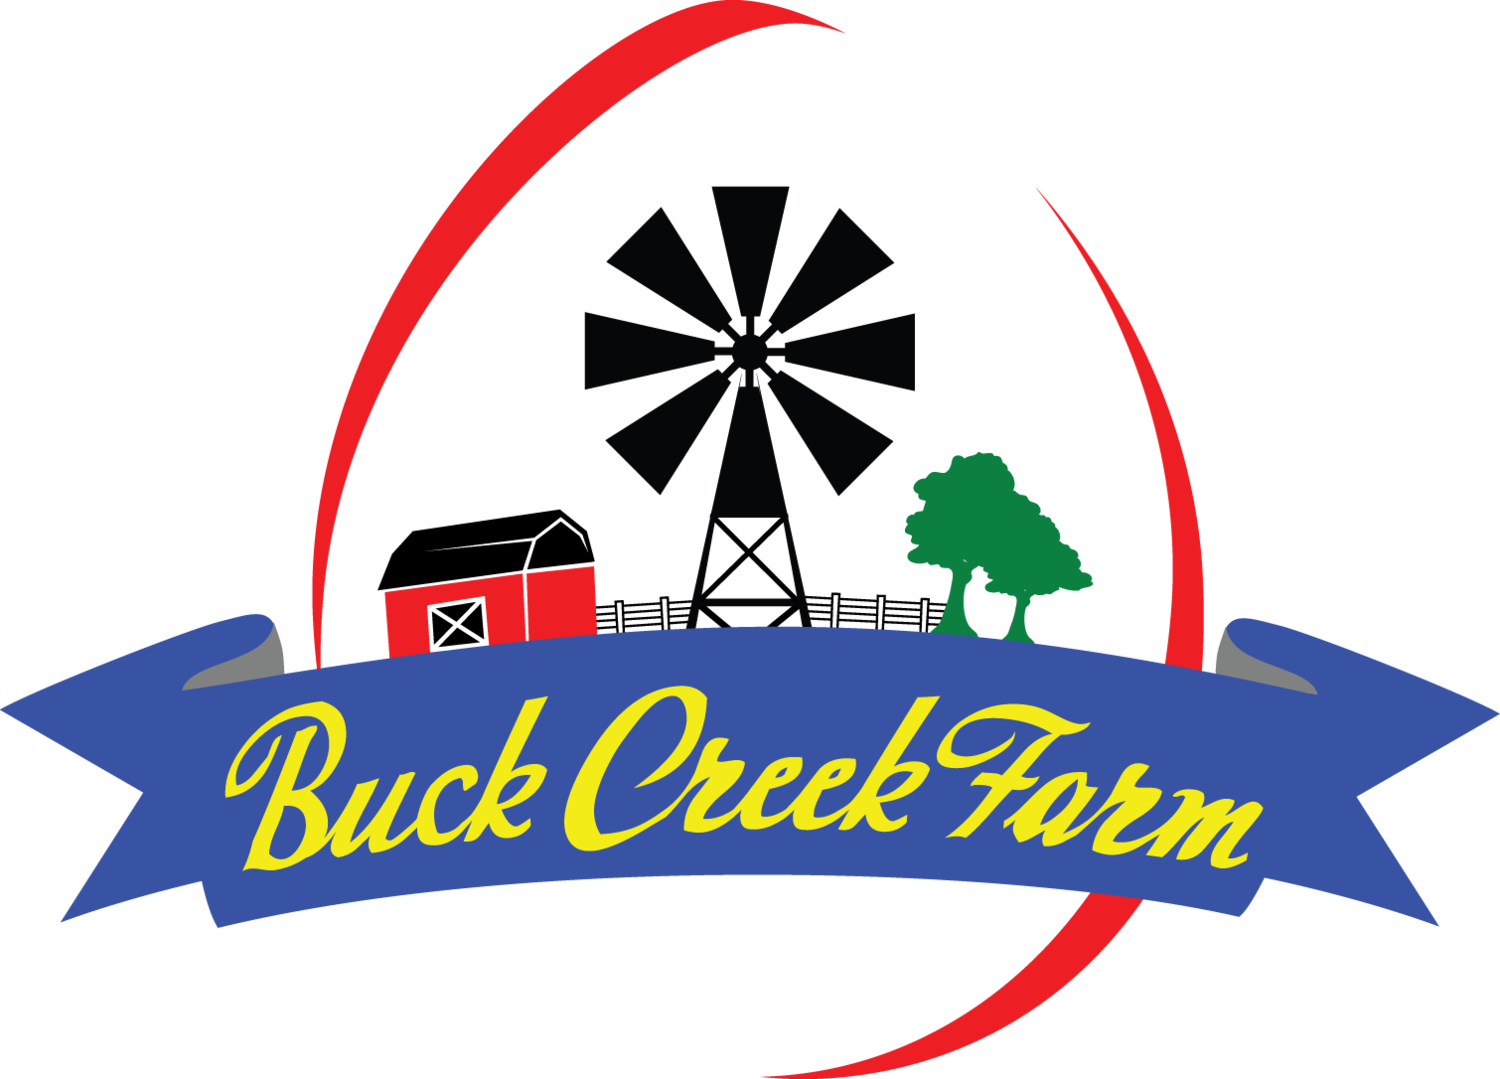 Buck Creek Farm